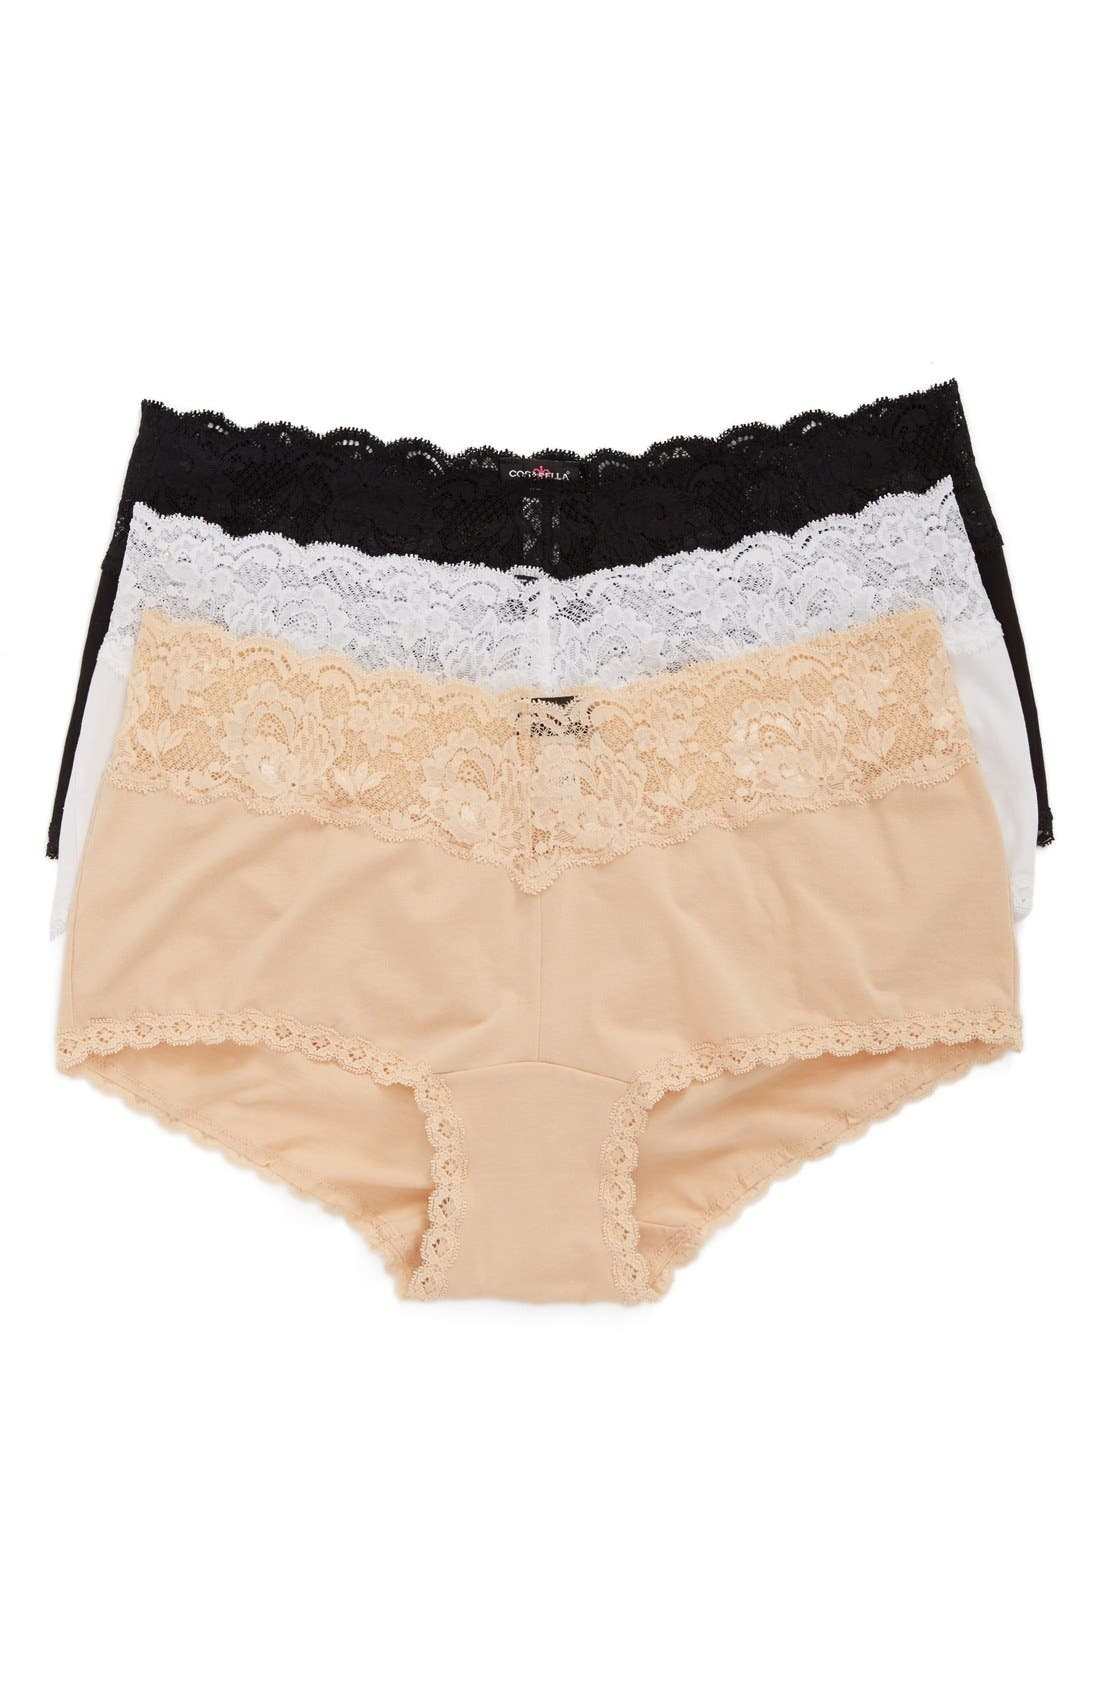 'Cheekie' Lace Trim Briefs,                             Main thumbnail 1, color,                             Black/ White/ Blush